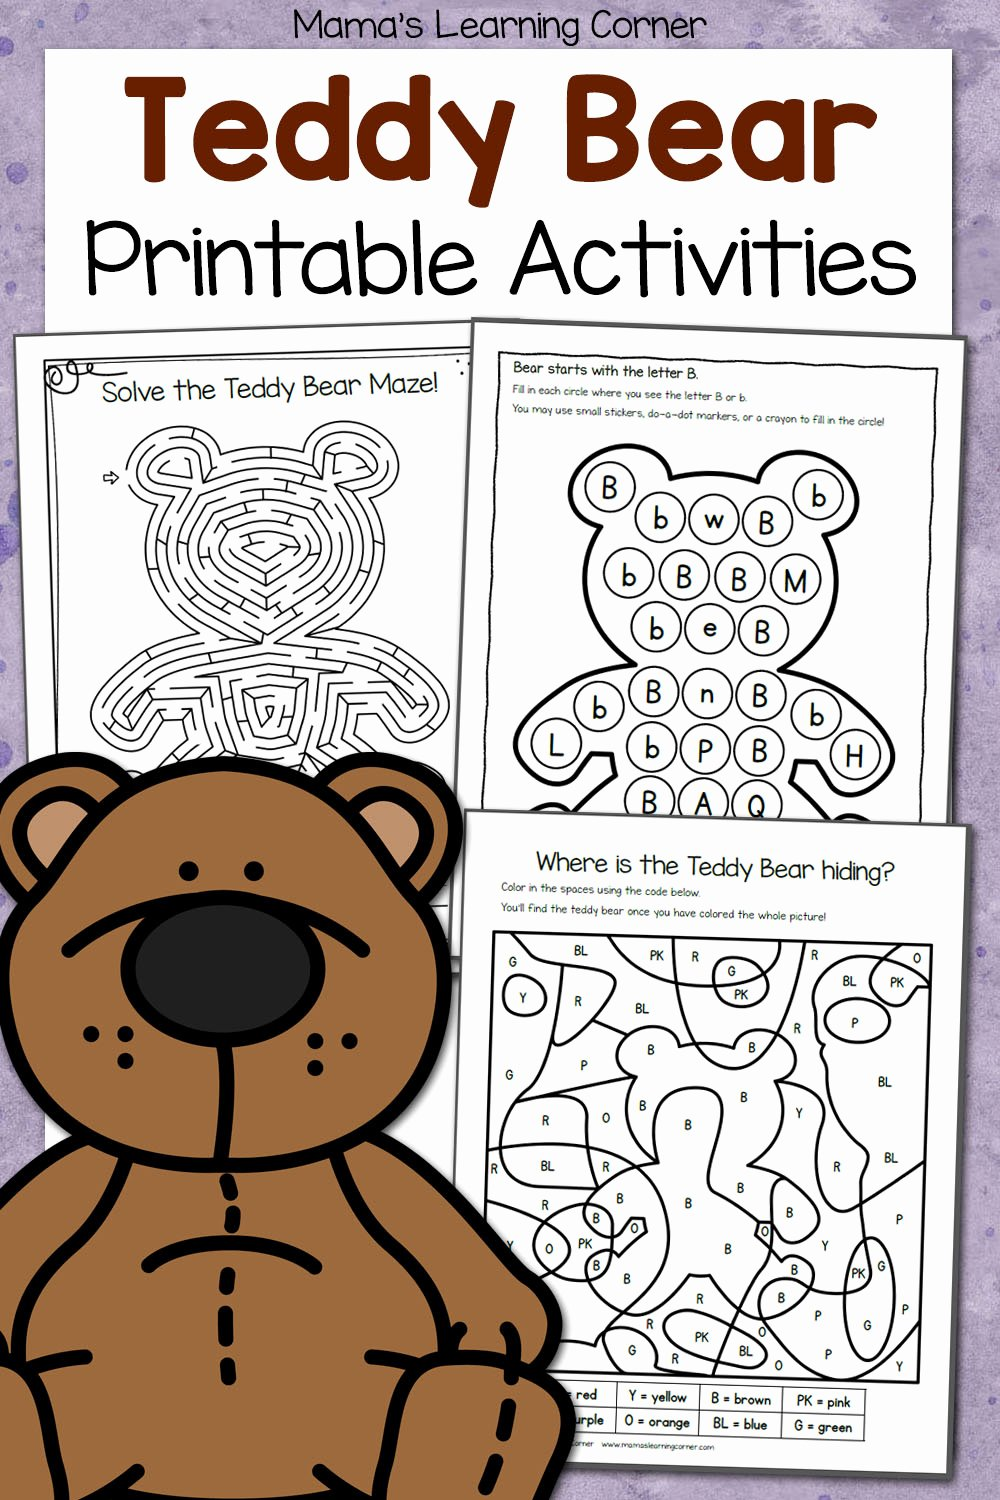 Teddy Bear Worksheets for Preschoolers Awesome Teddy Bear Activities Printable Packet Mamas Learning Corner